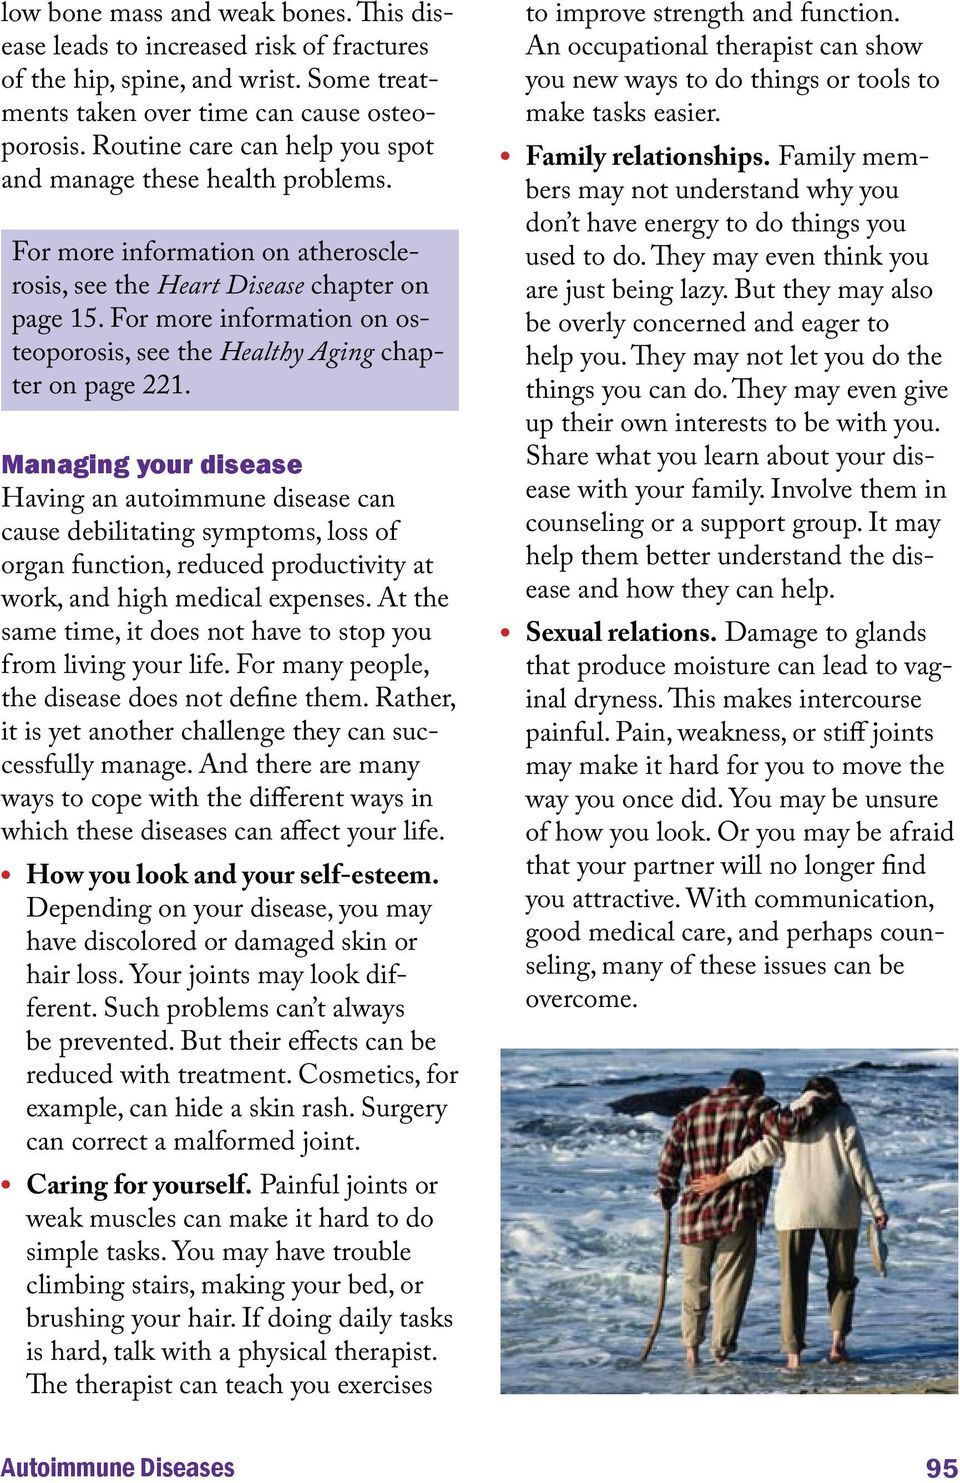 For more information on osteoporosis, see the Healthy Aging chapter on page 221.